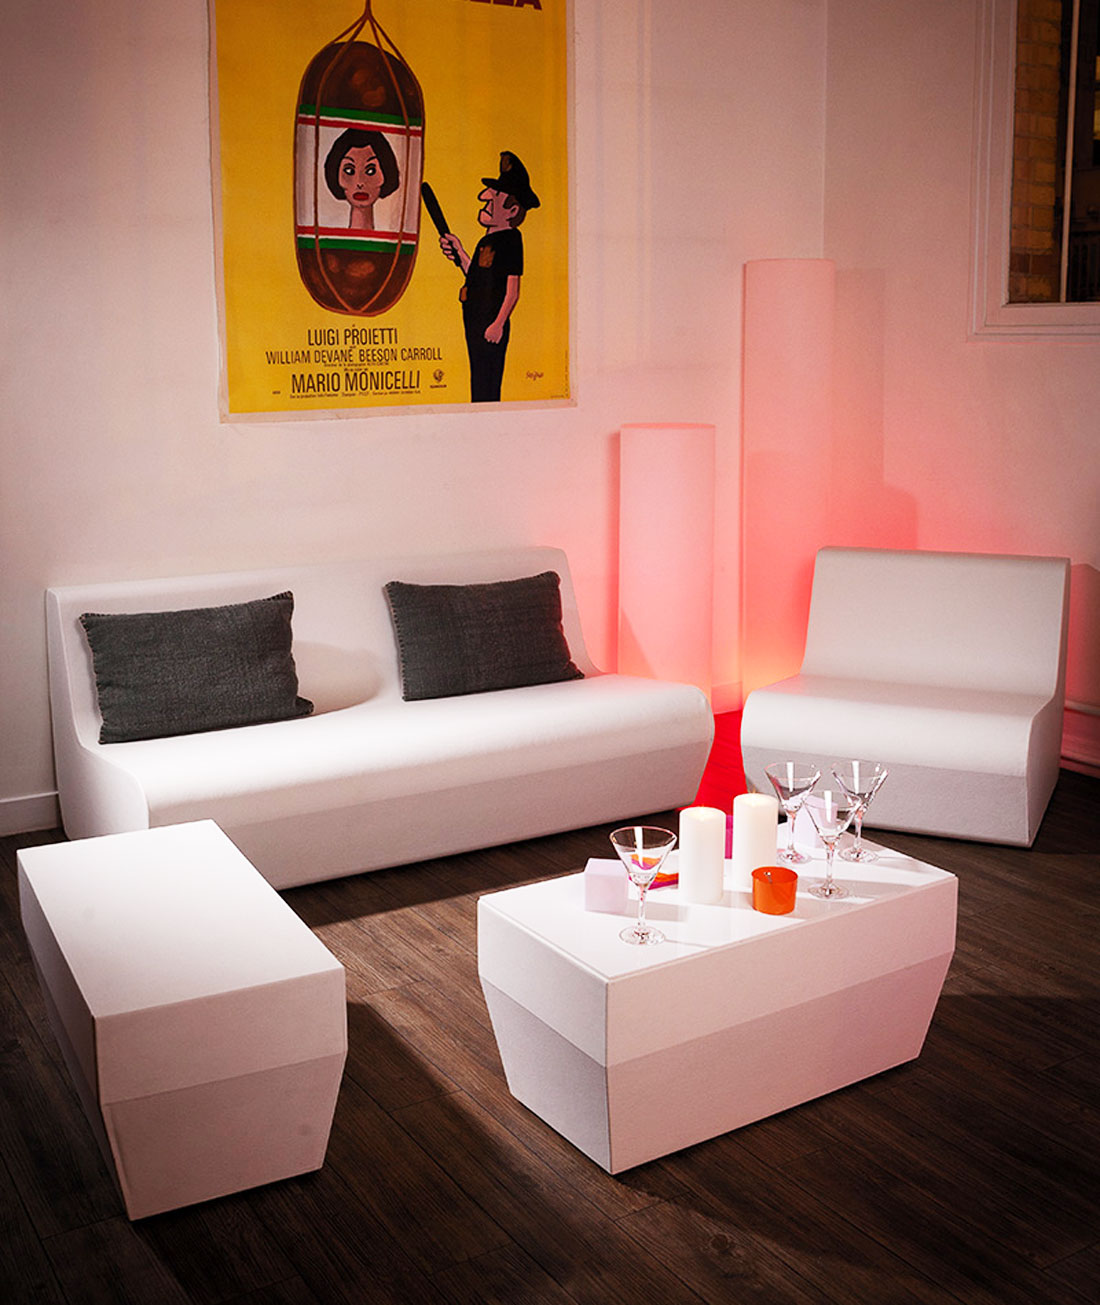 une soir e lounge chez soi avec la tendance light club. Black Bedroom Furniture Sets. Home Design Ideas